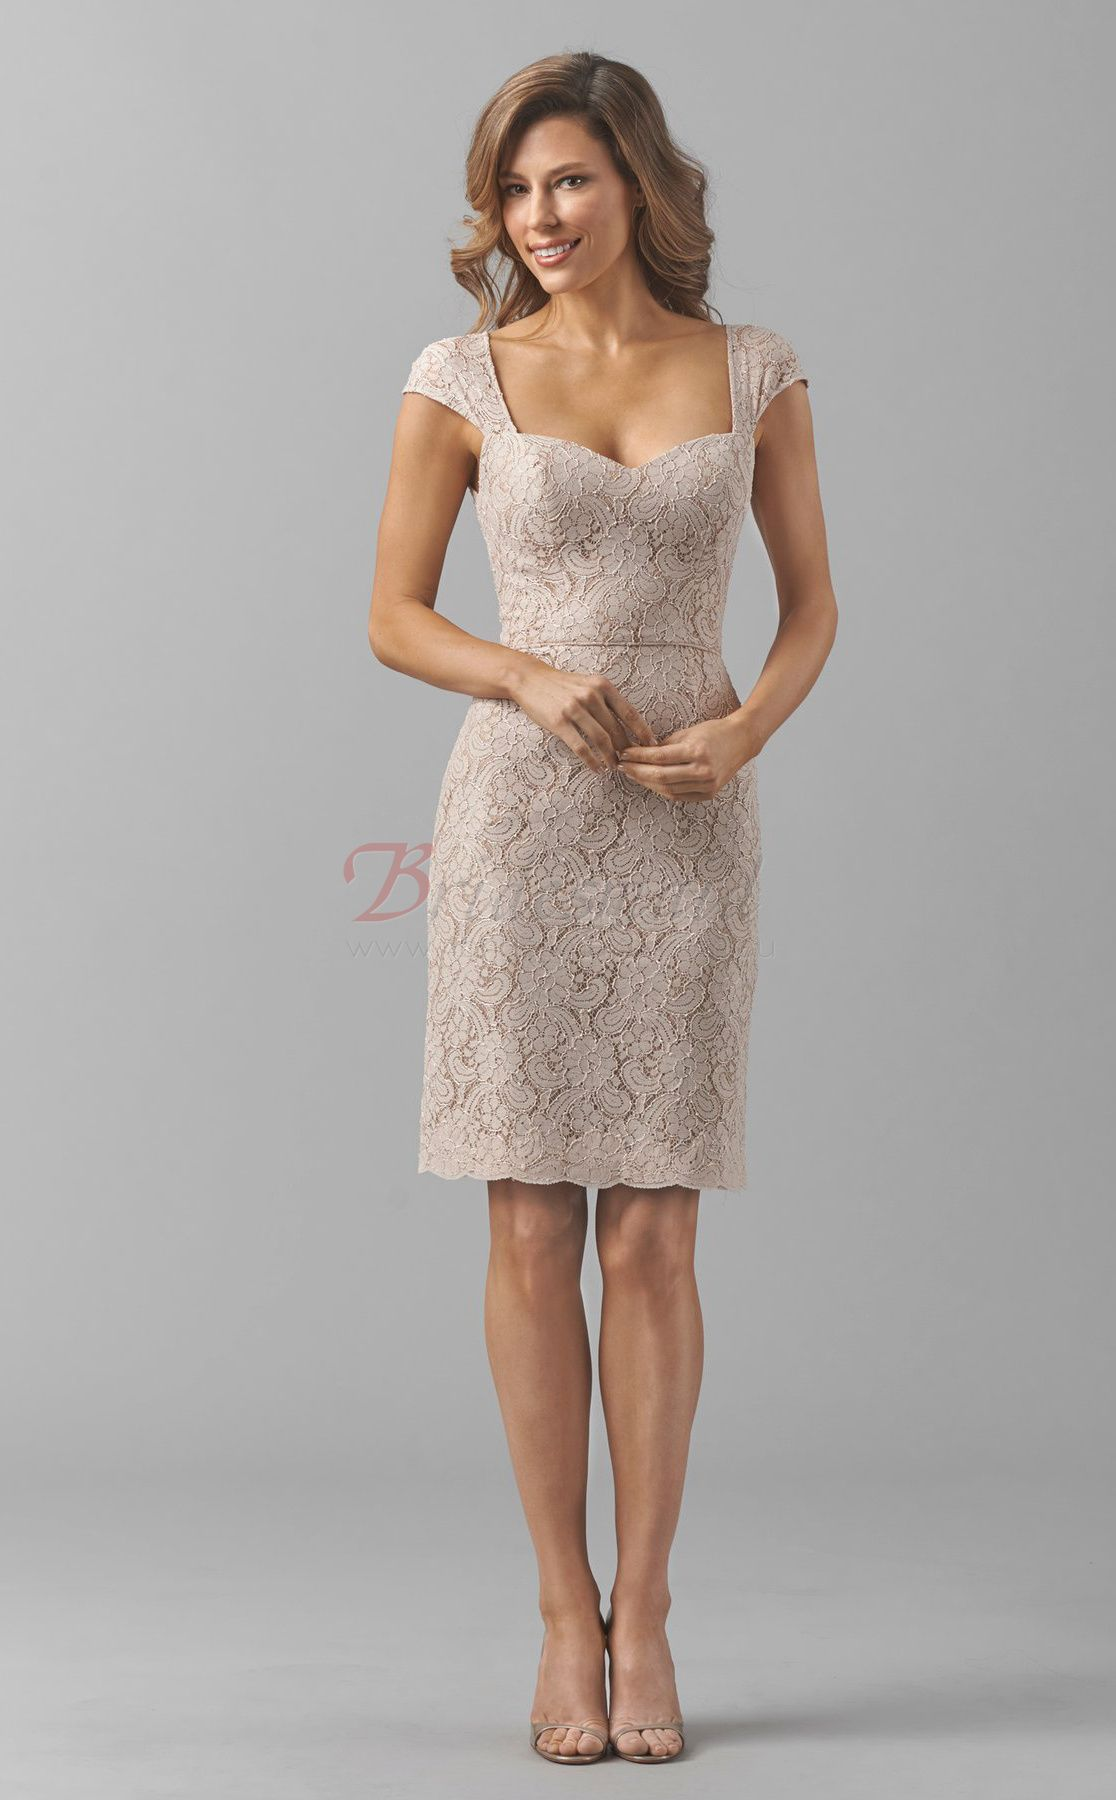 New arrival sheath lace short bridesmaid dresses with sleeves